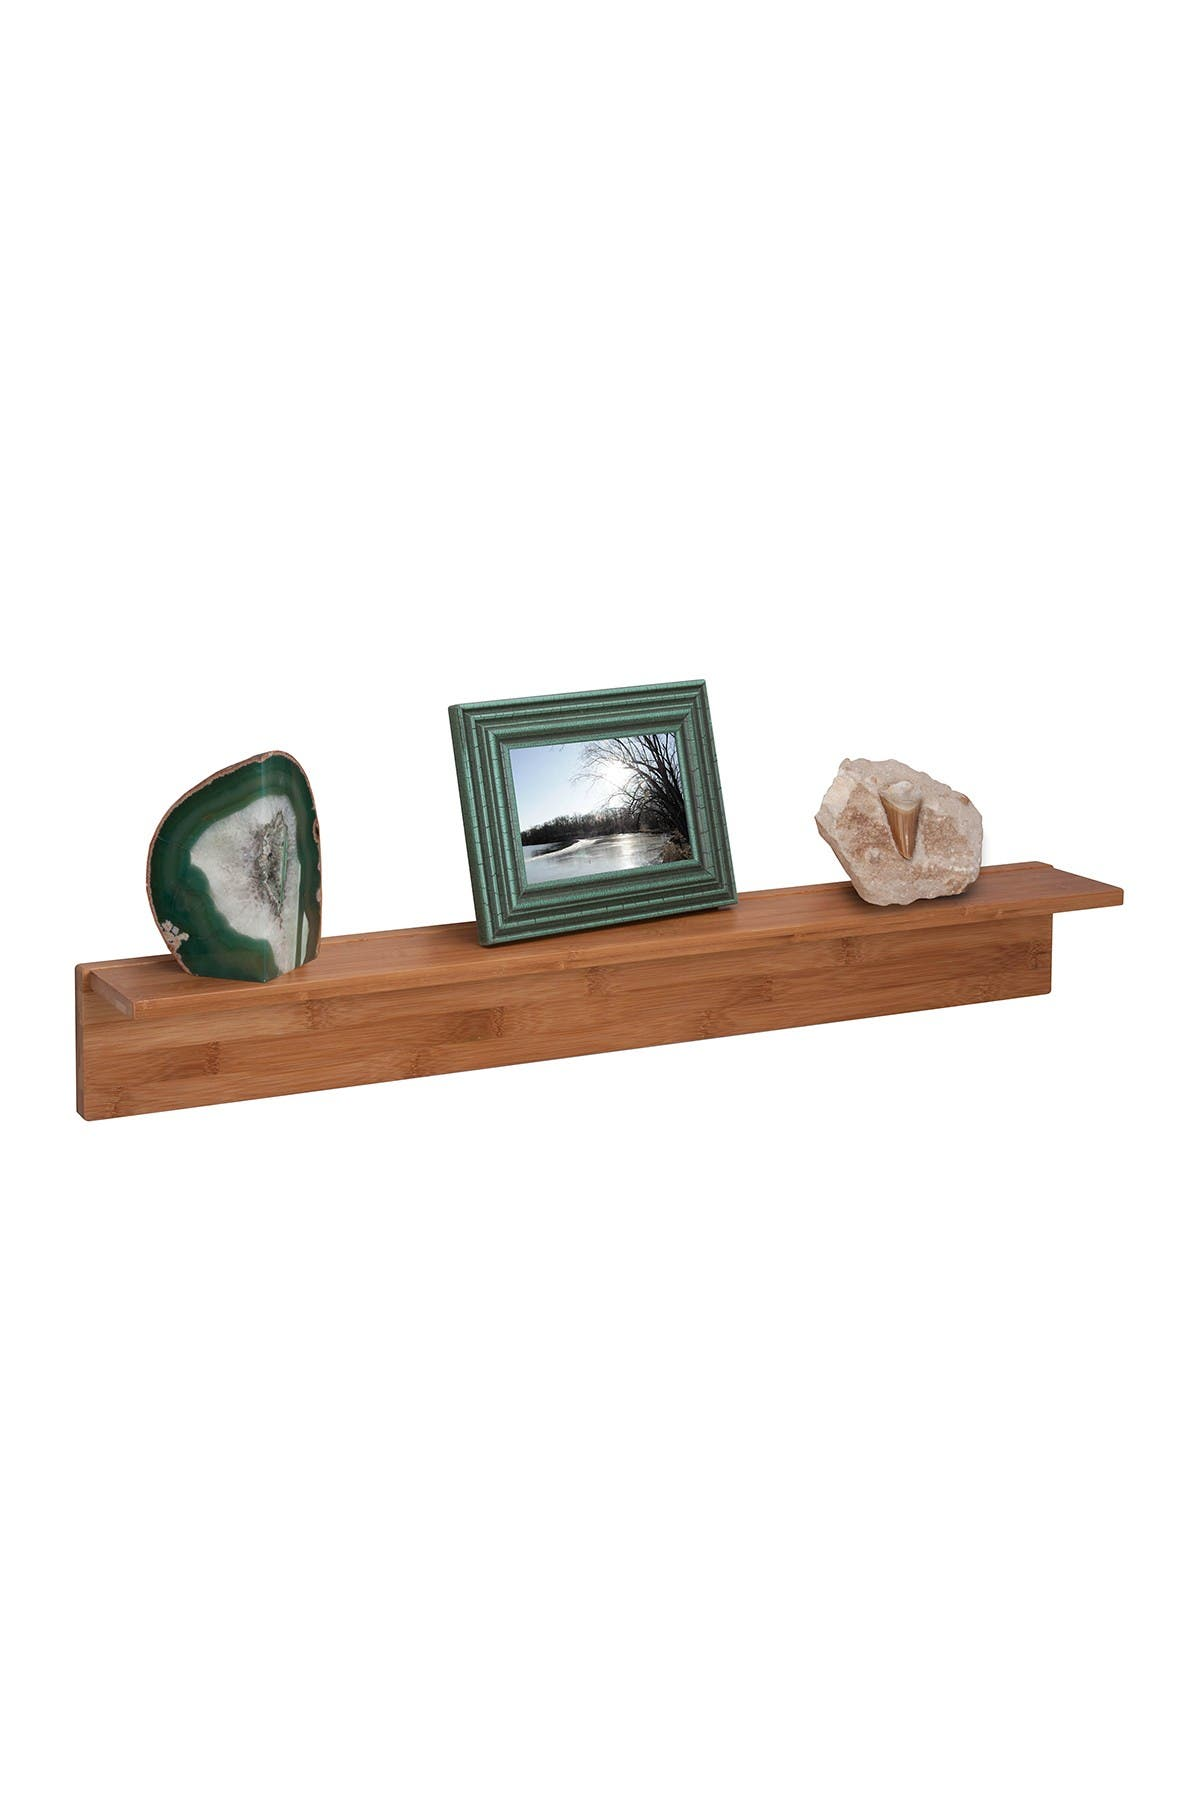 Image of Honey-Can-Do Natural Bamboo L Shaped Wall Shelf